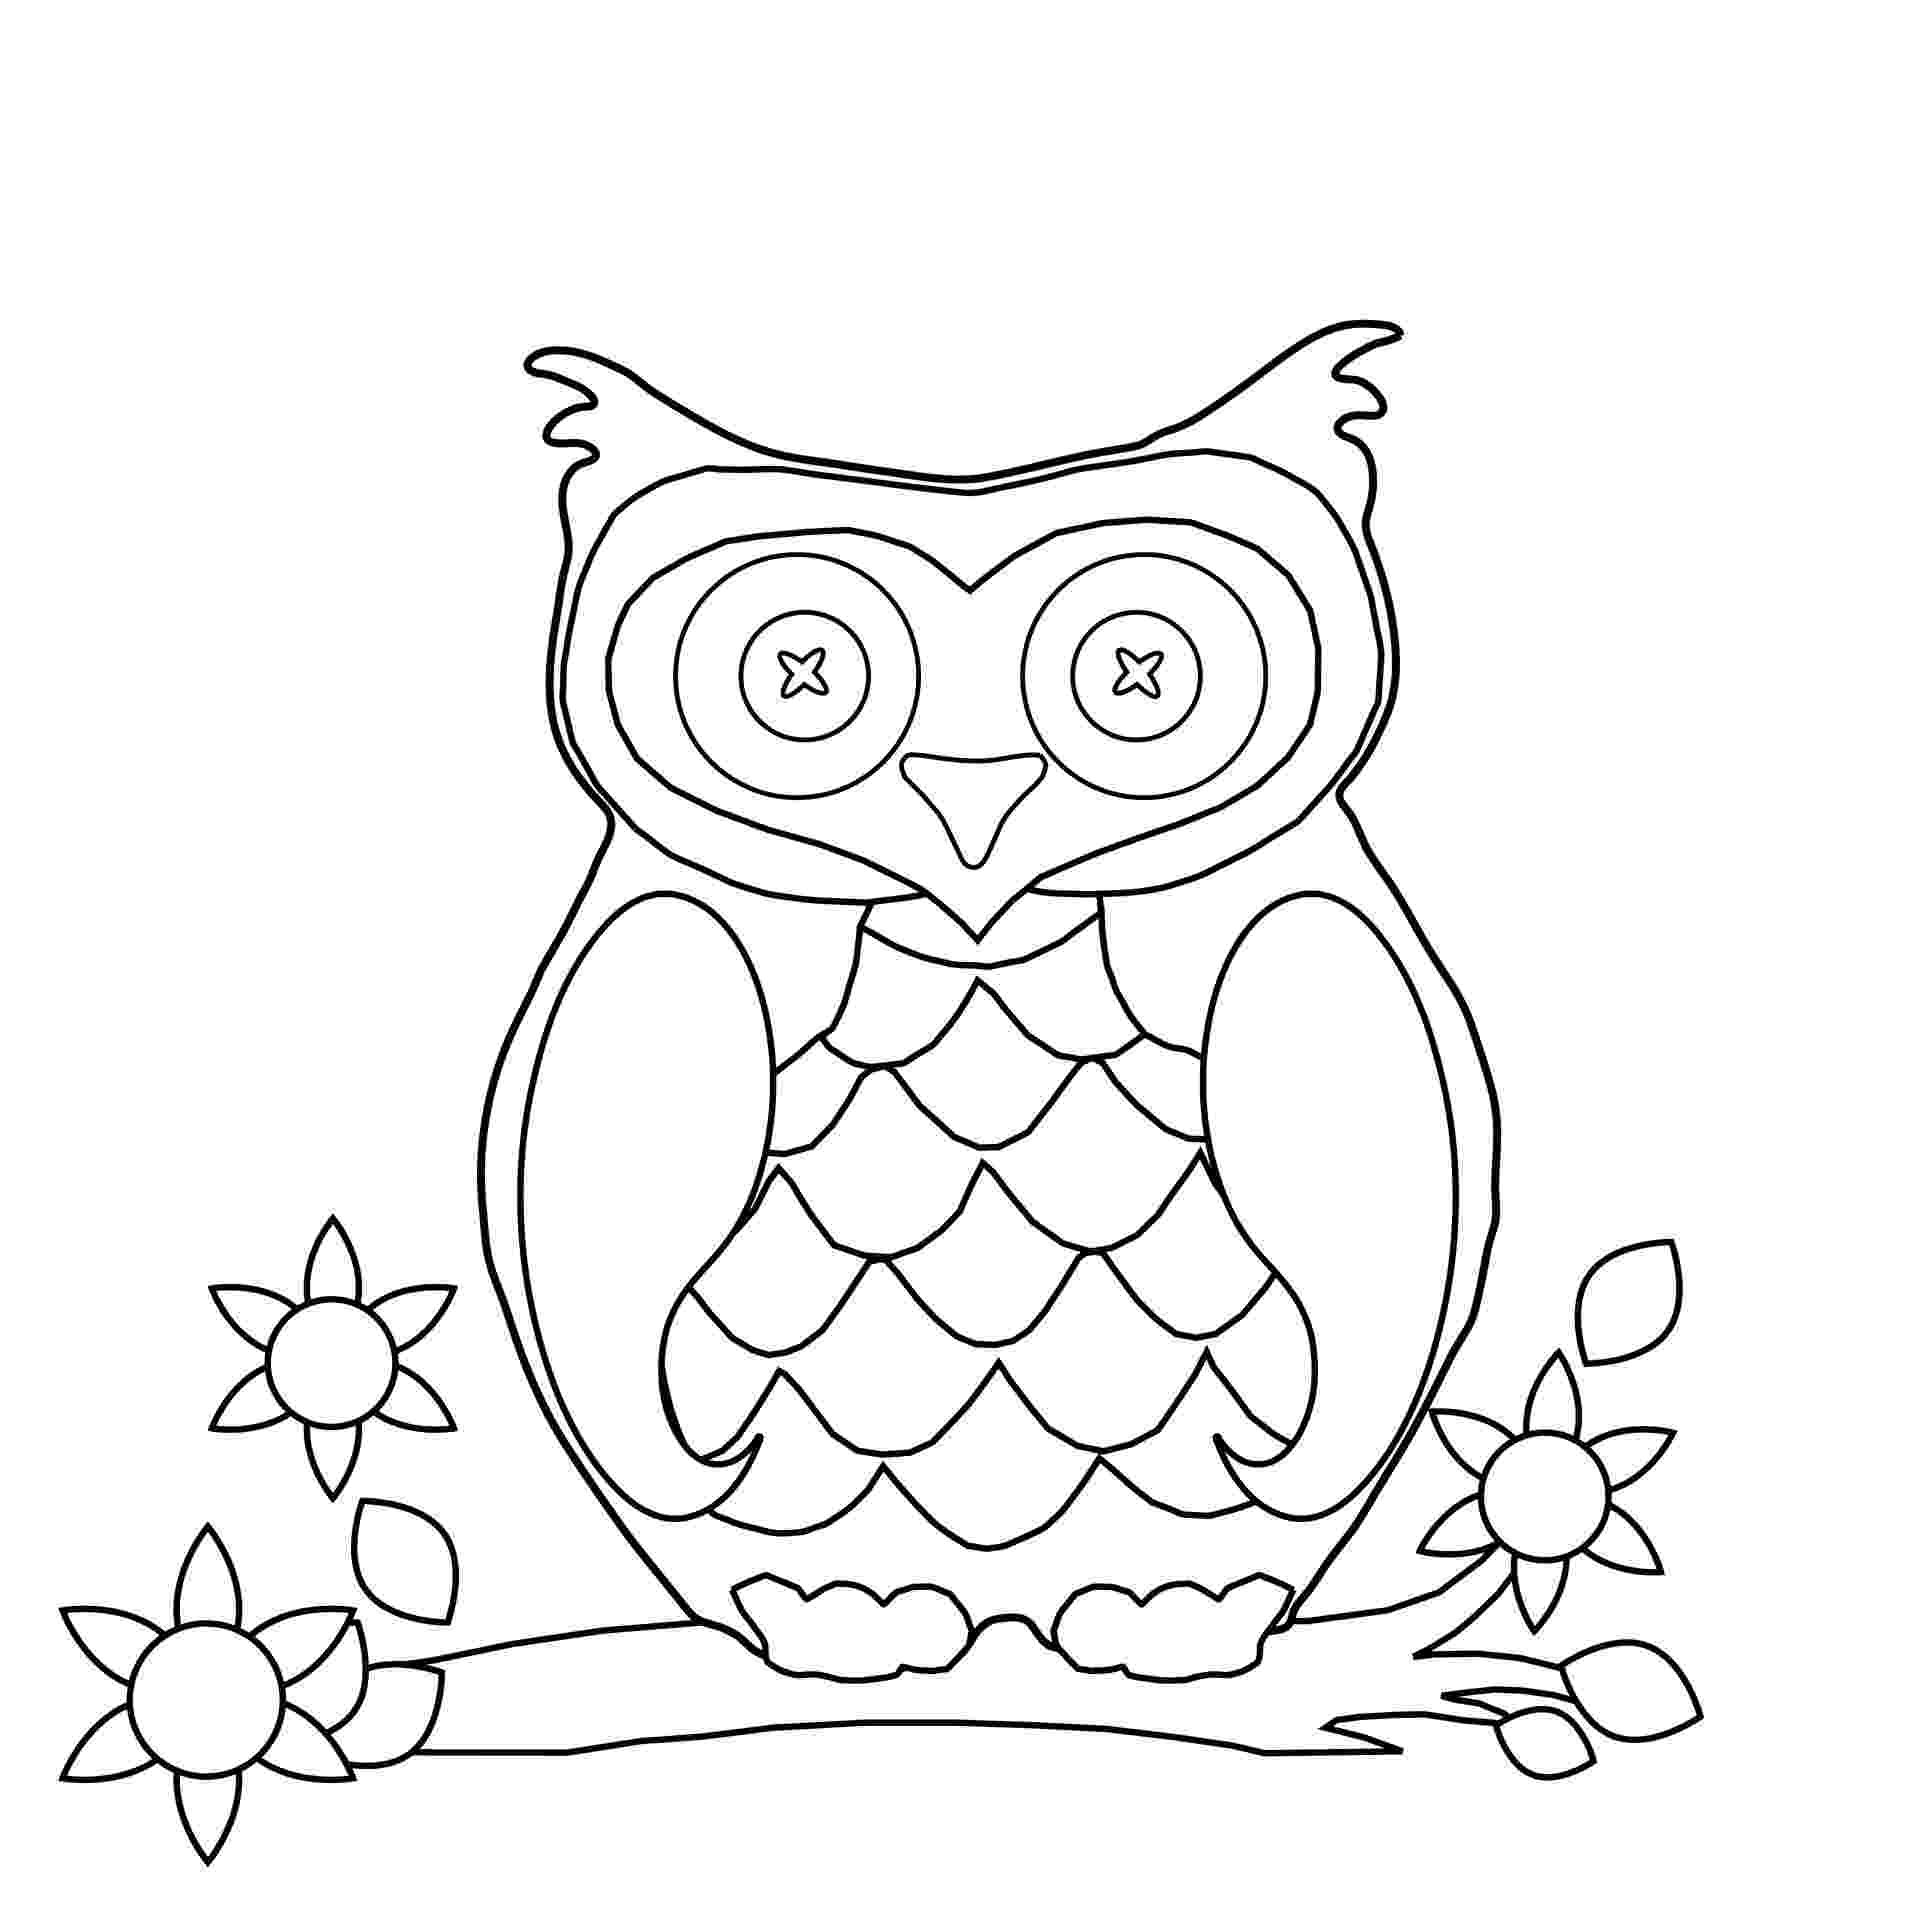 pics of owls to color owl coloring pages owl coloring pages color owls pics to of